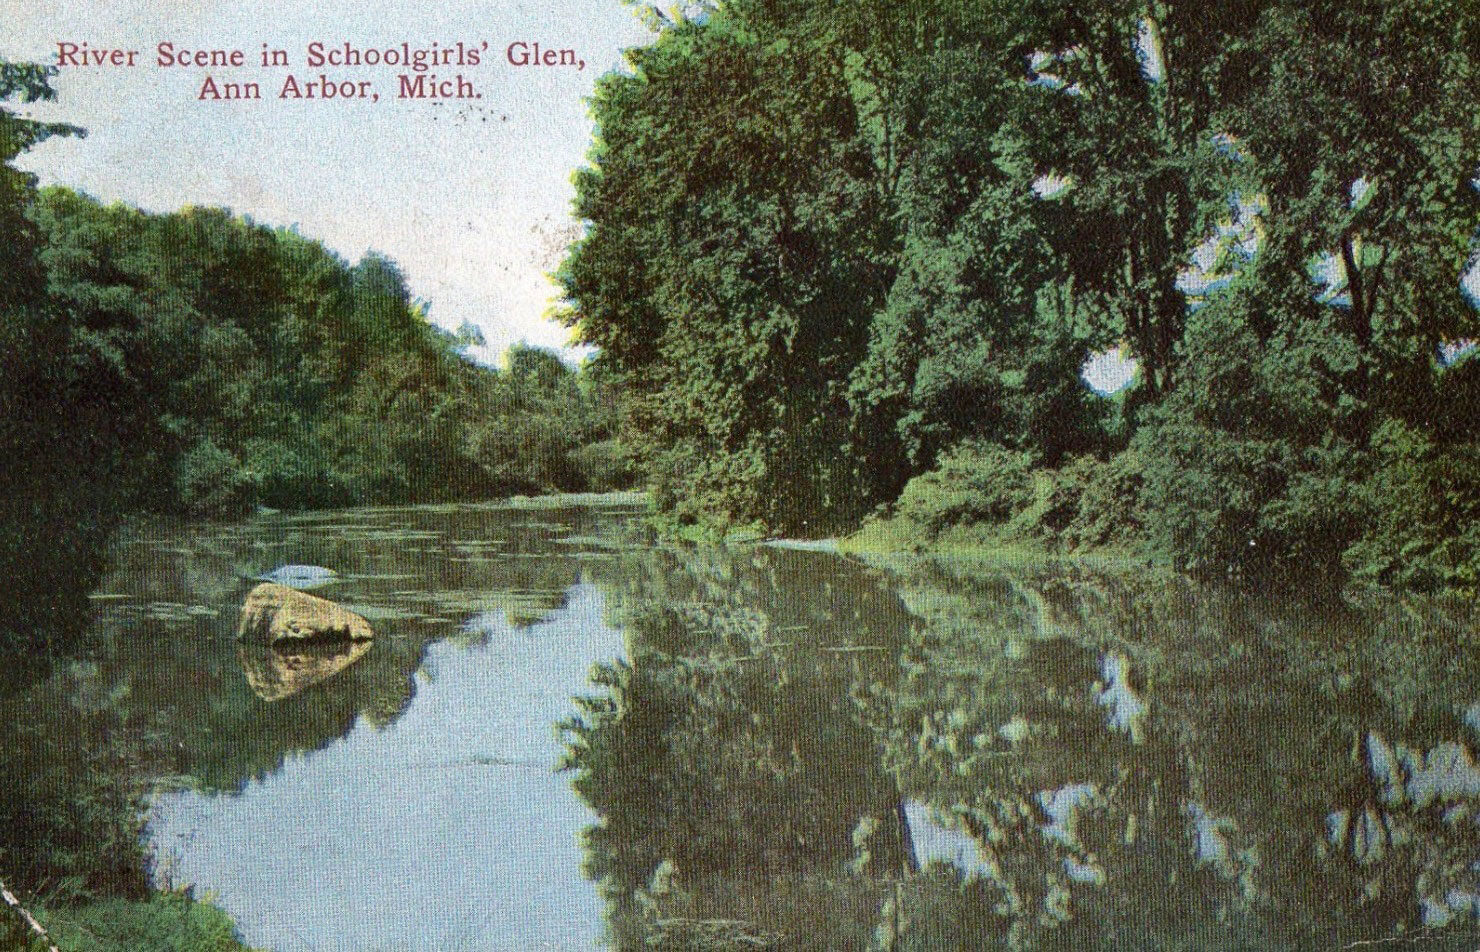 Postcard of Huron at Schoolgirls Glen